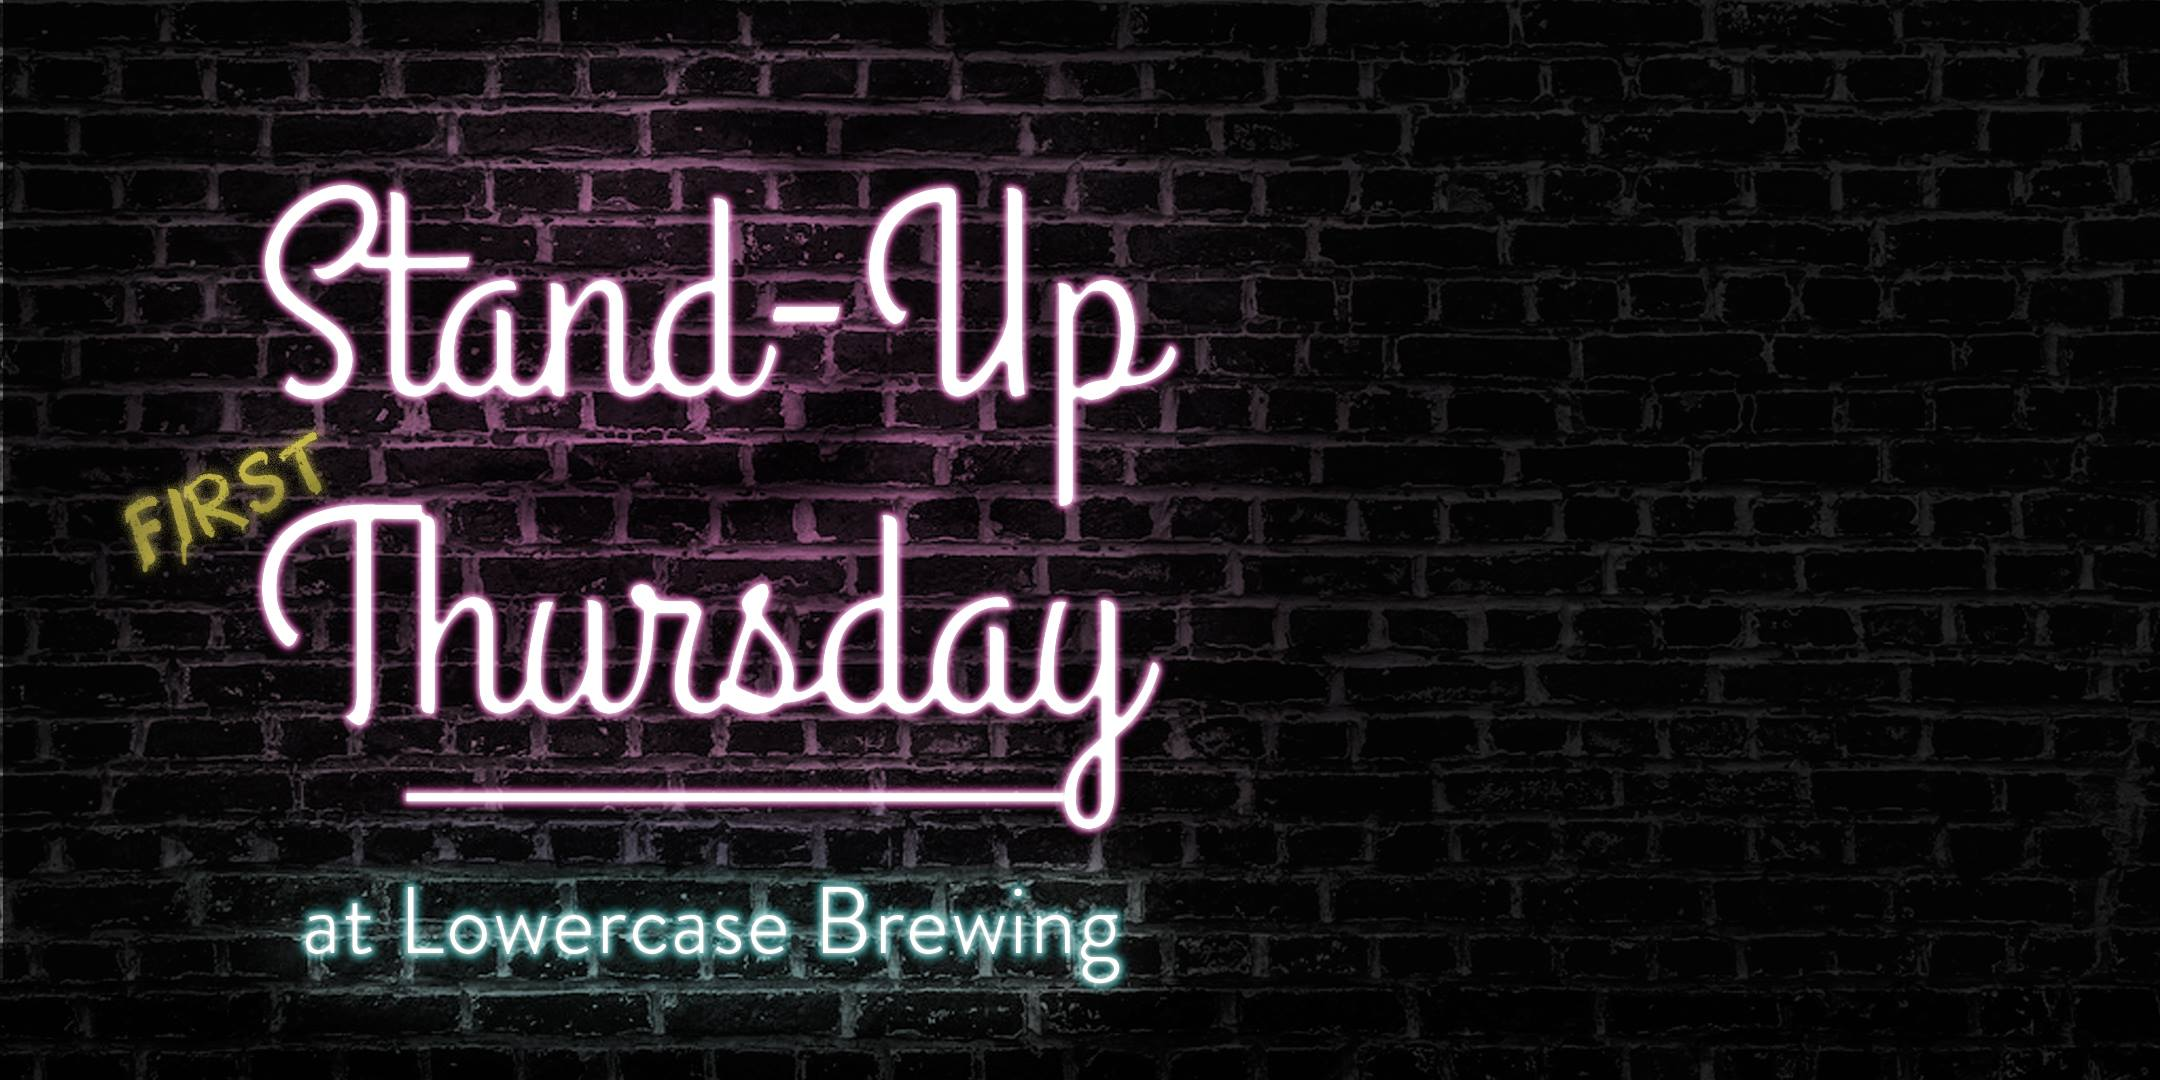 Join Lowercase Brewing Thursday, August 2nd for another night of laughs!  Event details: • Thursday, Oct 8- 7-9pm • Tickets are $12 and include your first pint.   Lowercase Brewing   6235 Airport Way S, Seattle, Washington 98108